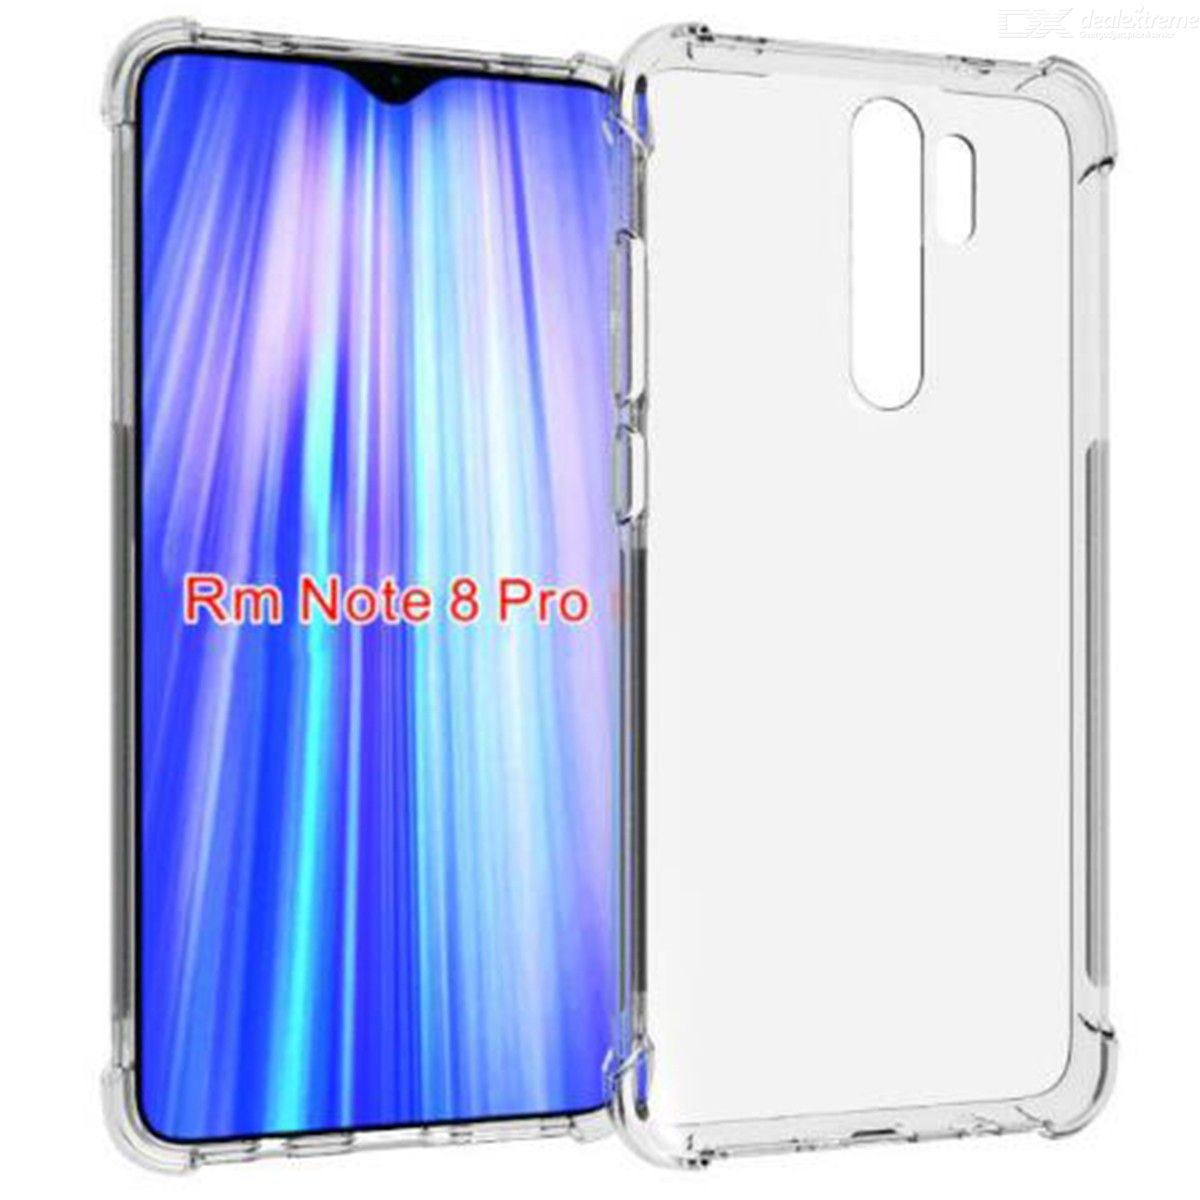 ASLING Four-corner Airbag Phone Case Protective Back Cover for Xiaomi Redmi Note 8 Pro